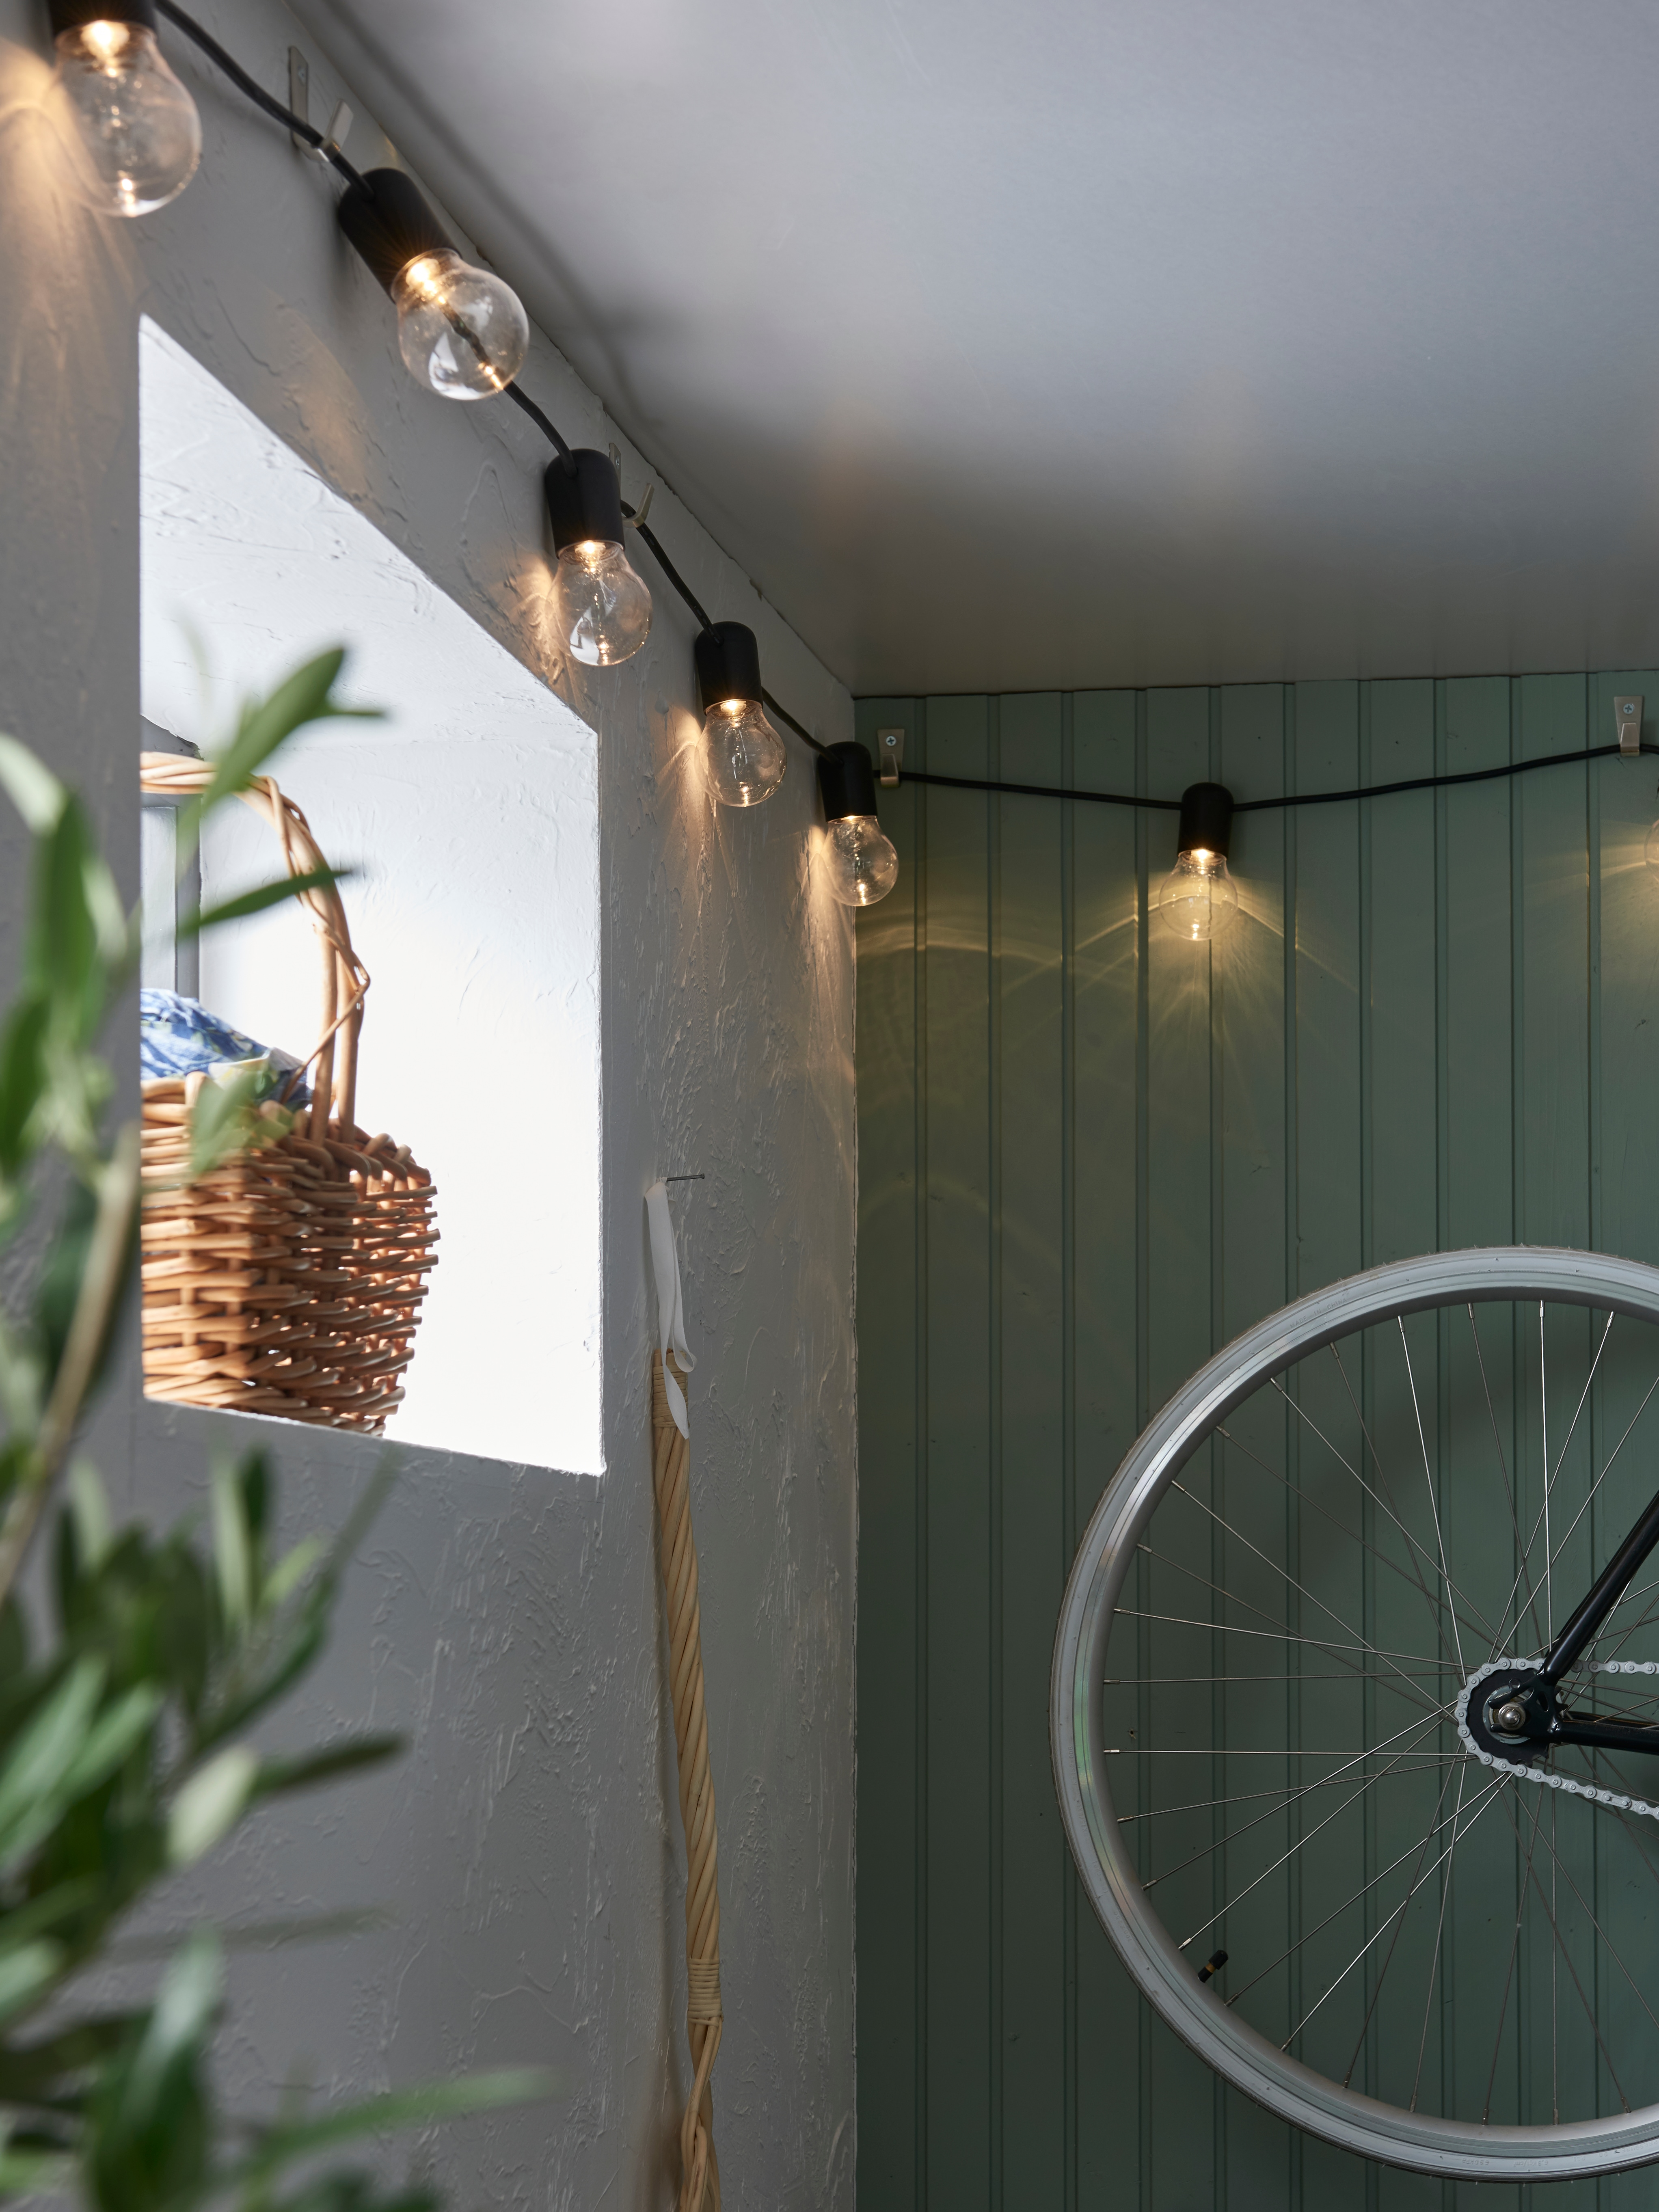 Interior with LED lighting chain with 12 lights, bicycle mounted to the wall, basket and potted plant.